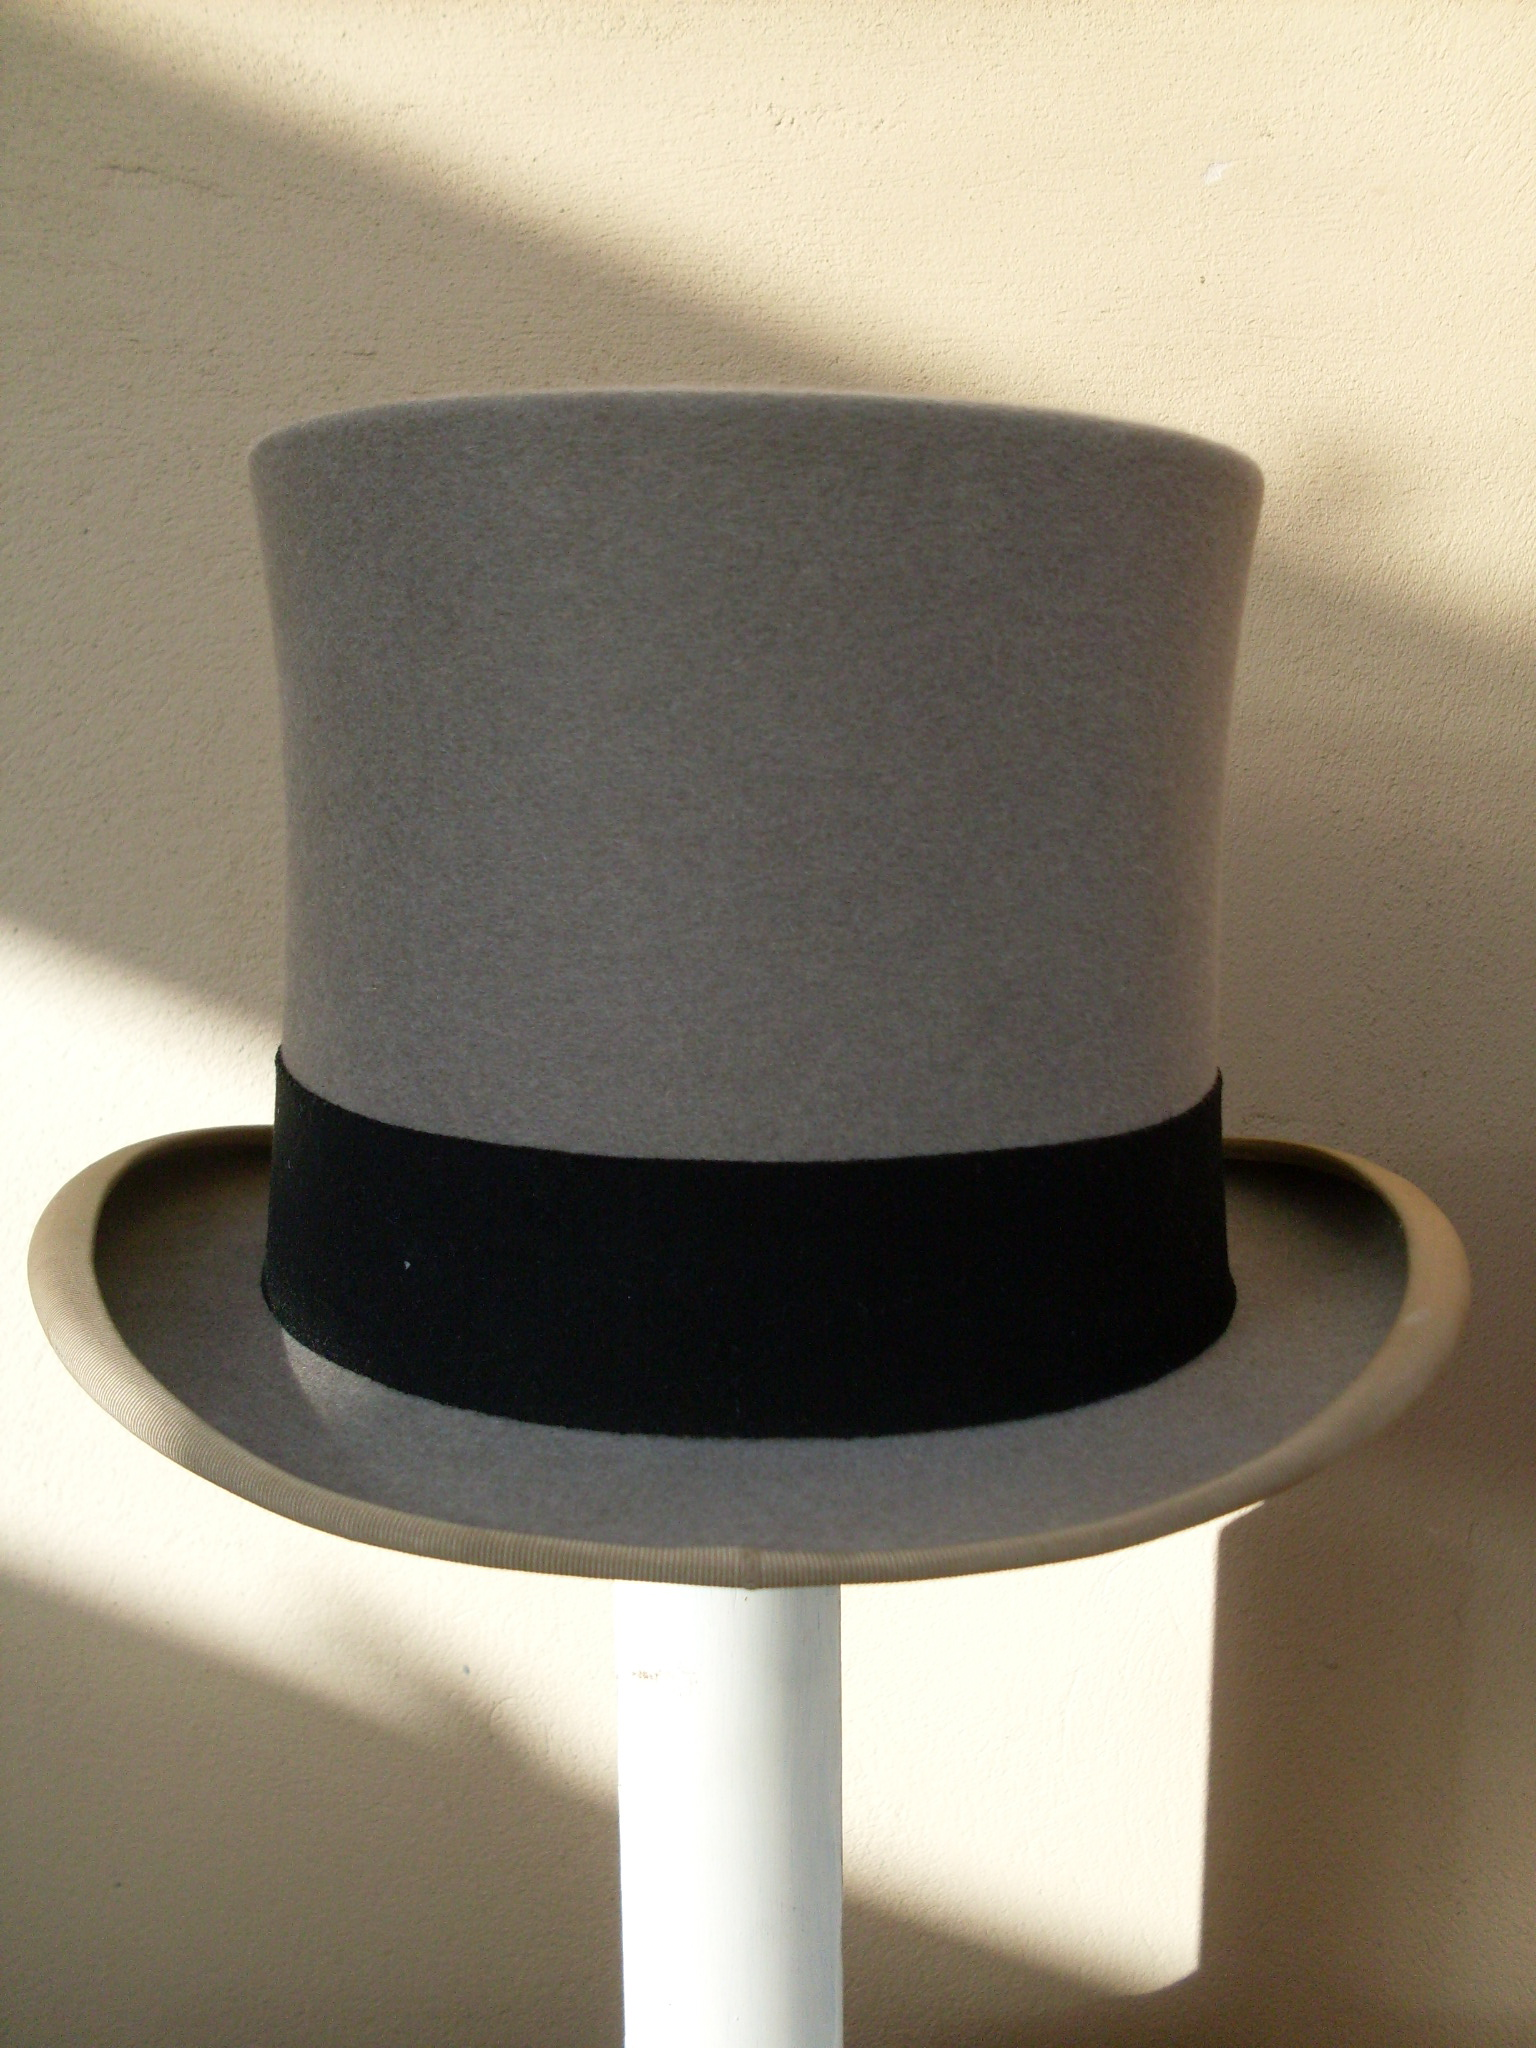 Top Hats Andrews Amp Pygott The Morning Dress Guide